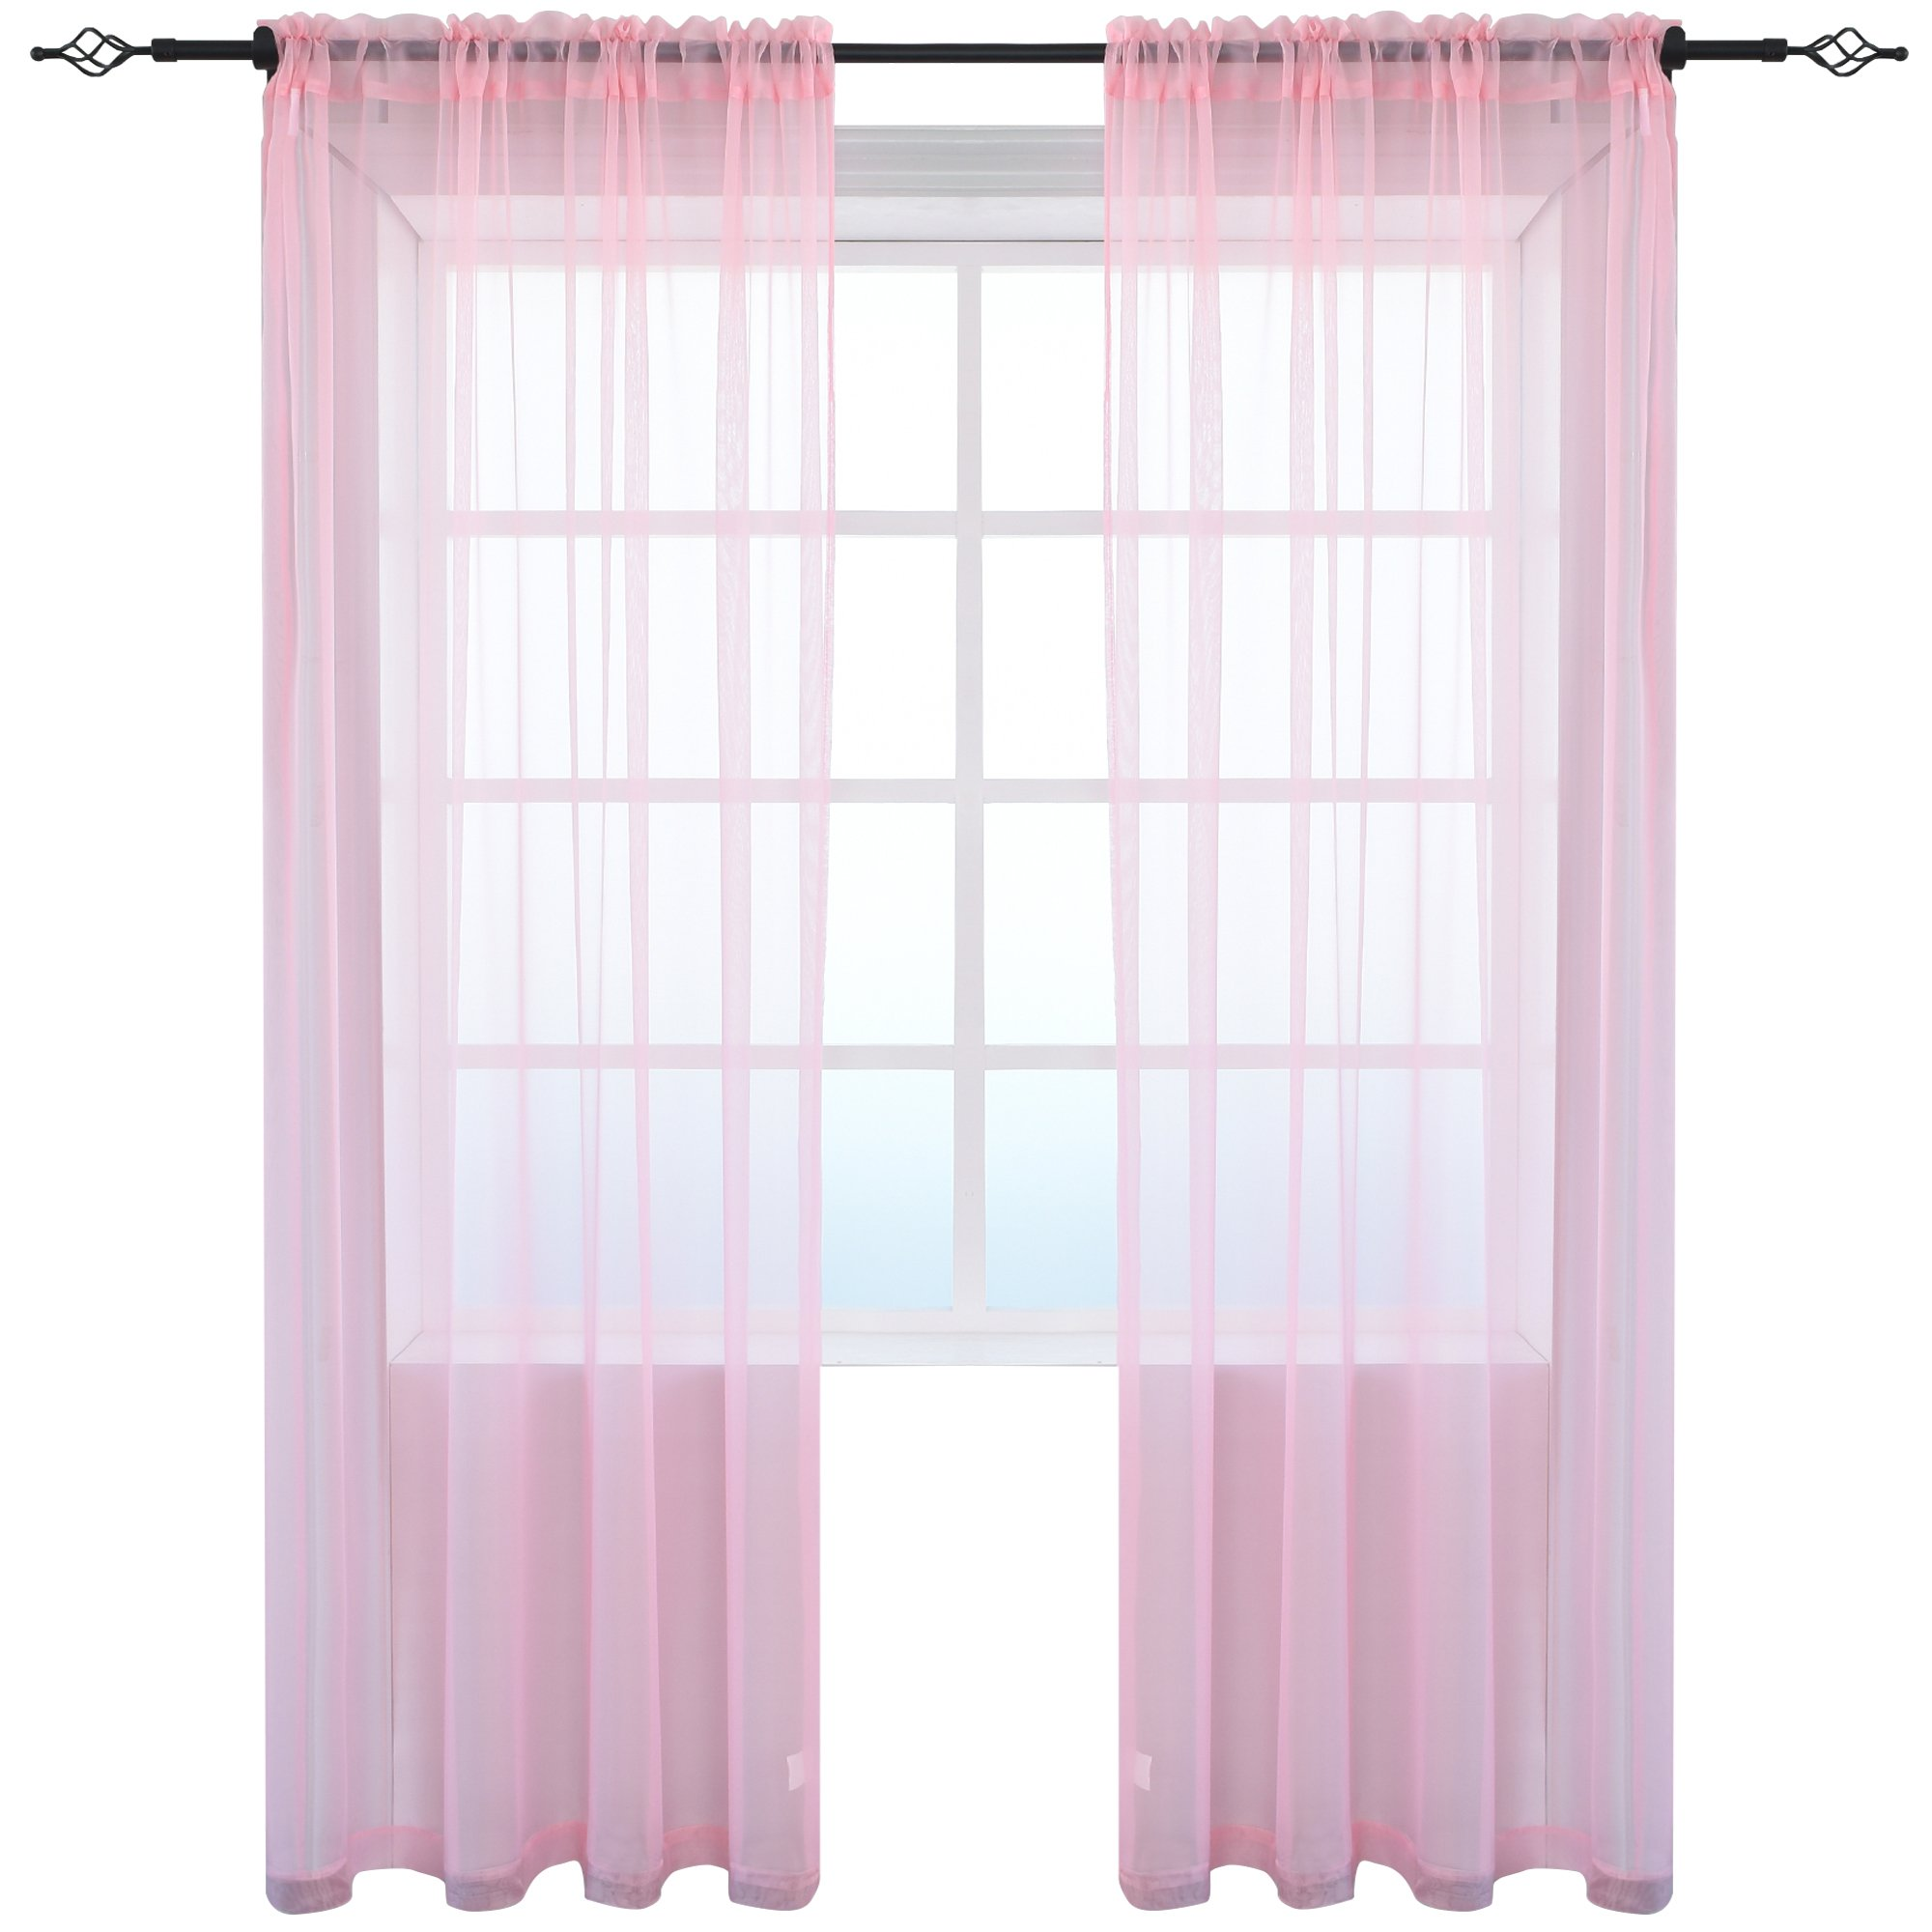 KEQIAOSUOCAI 2 Pieces Solid Color Sheer Rod Pocket Curtains Panels Bedroom Living room(Pink,52Wx84L,Set of 2)